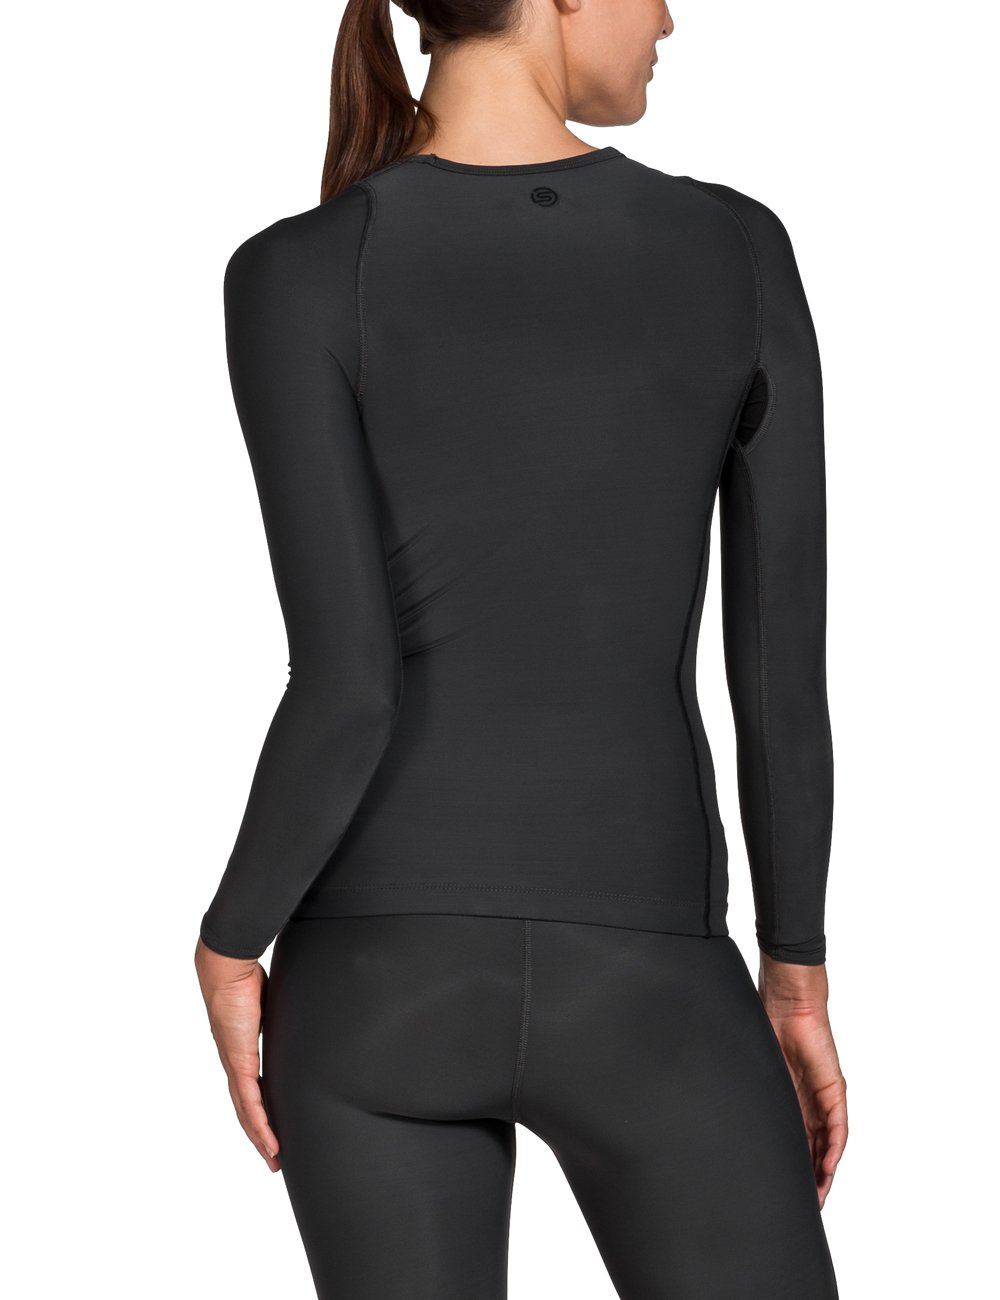 Skins Women's Ry400 Recovery Long Sleeve Top, Black, SmallH by Skins (Image #2)